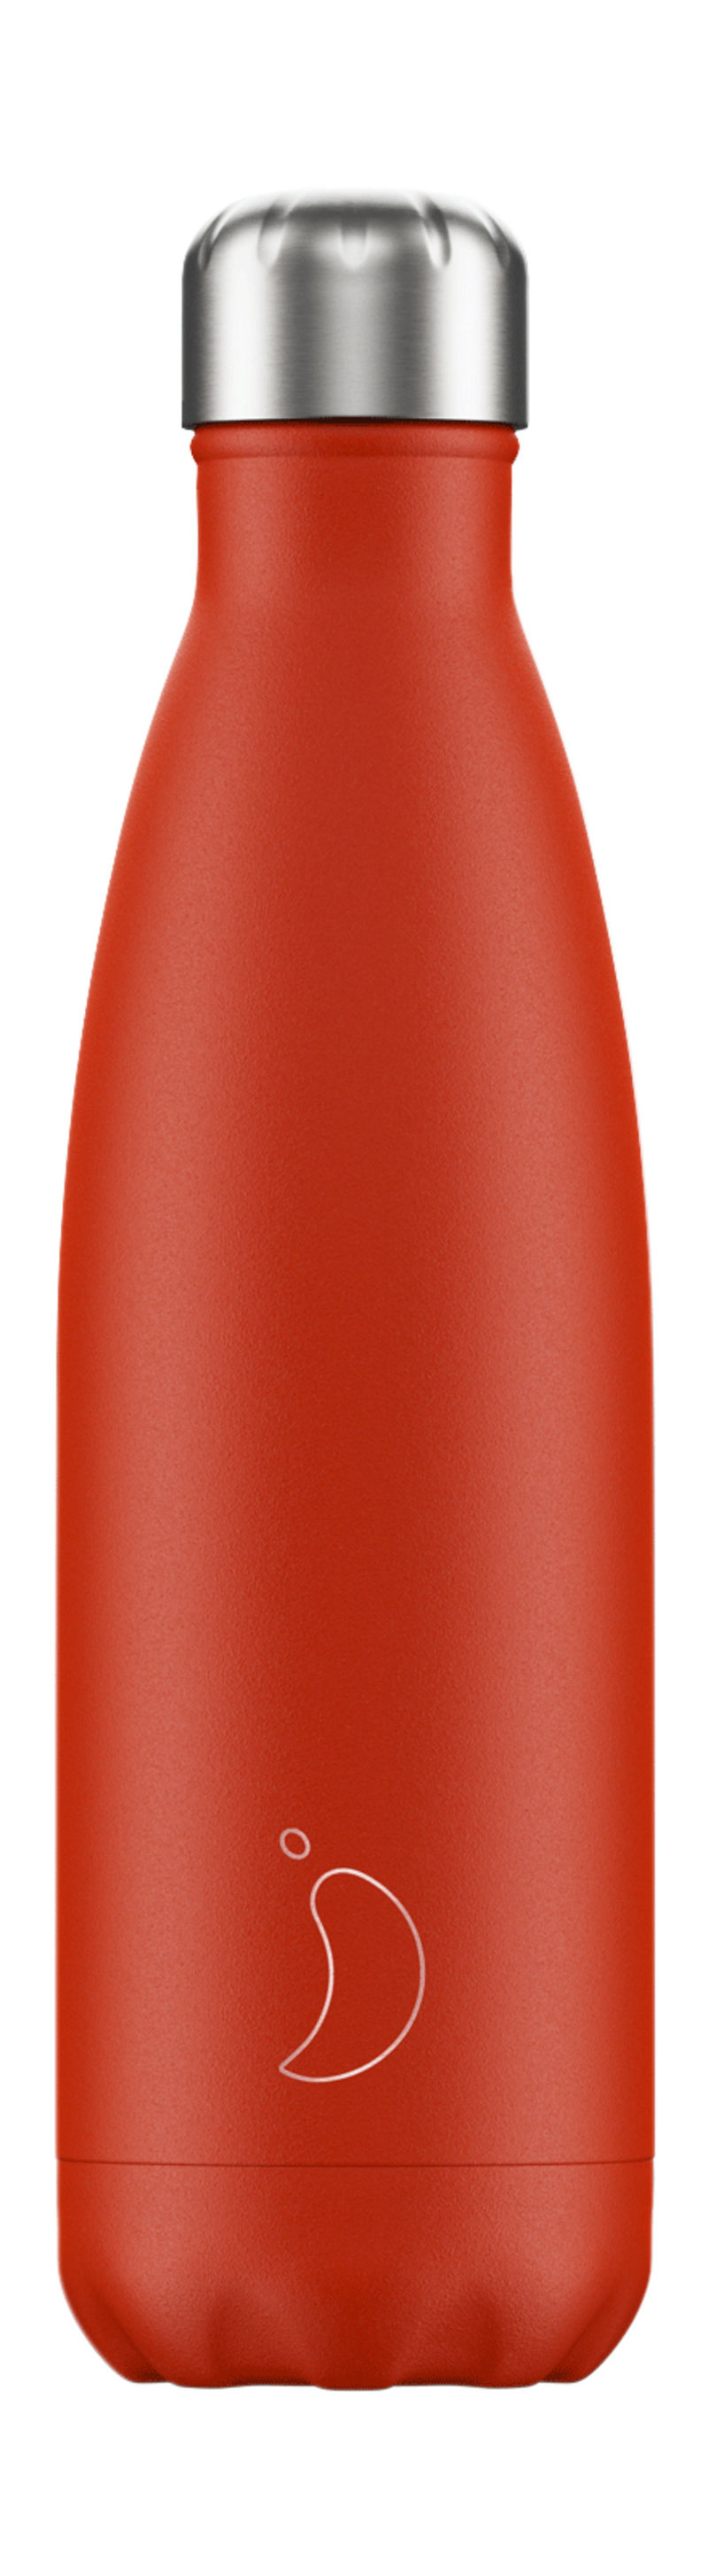 BOTELLA INOX ROJO NEON 500ML